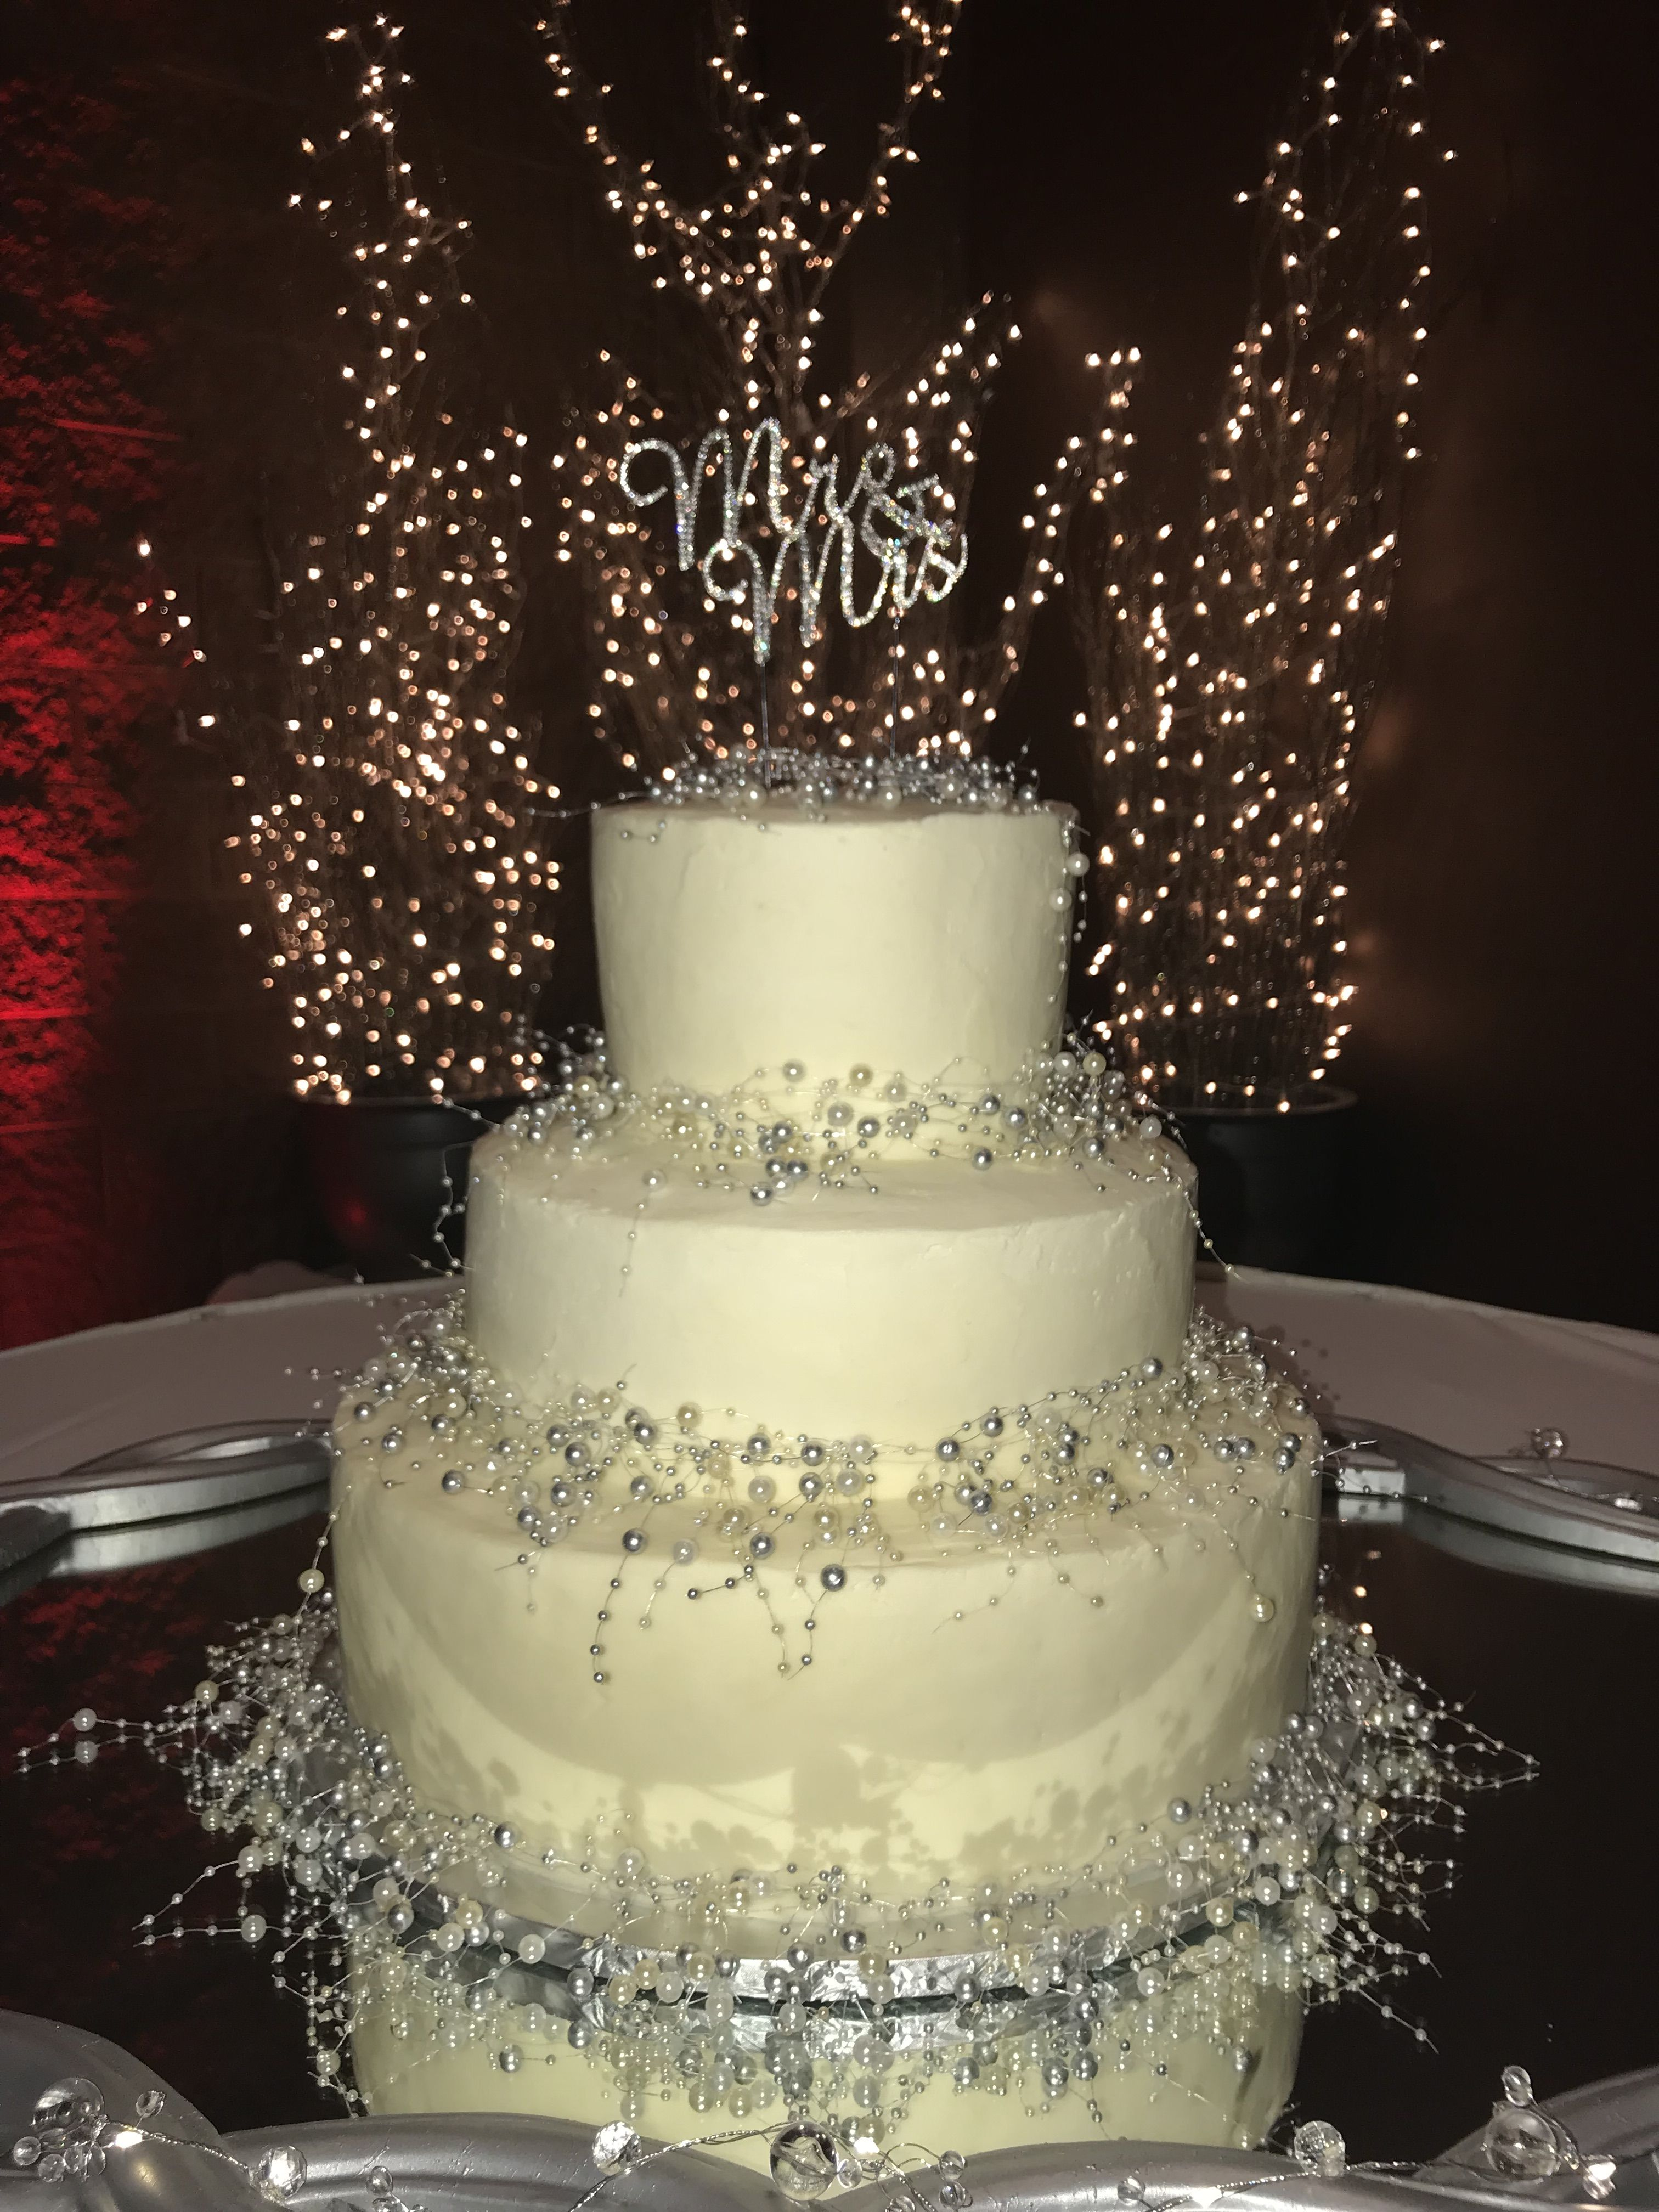 New Years Eve Wedding Cake By Patti S Kitchen Dublin Ohio